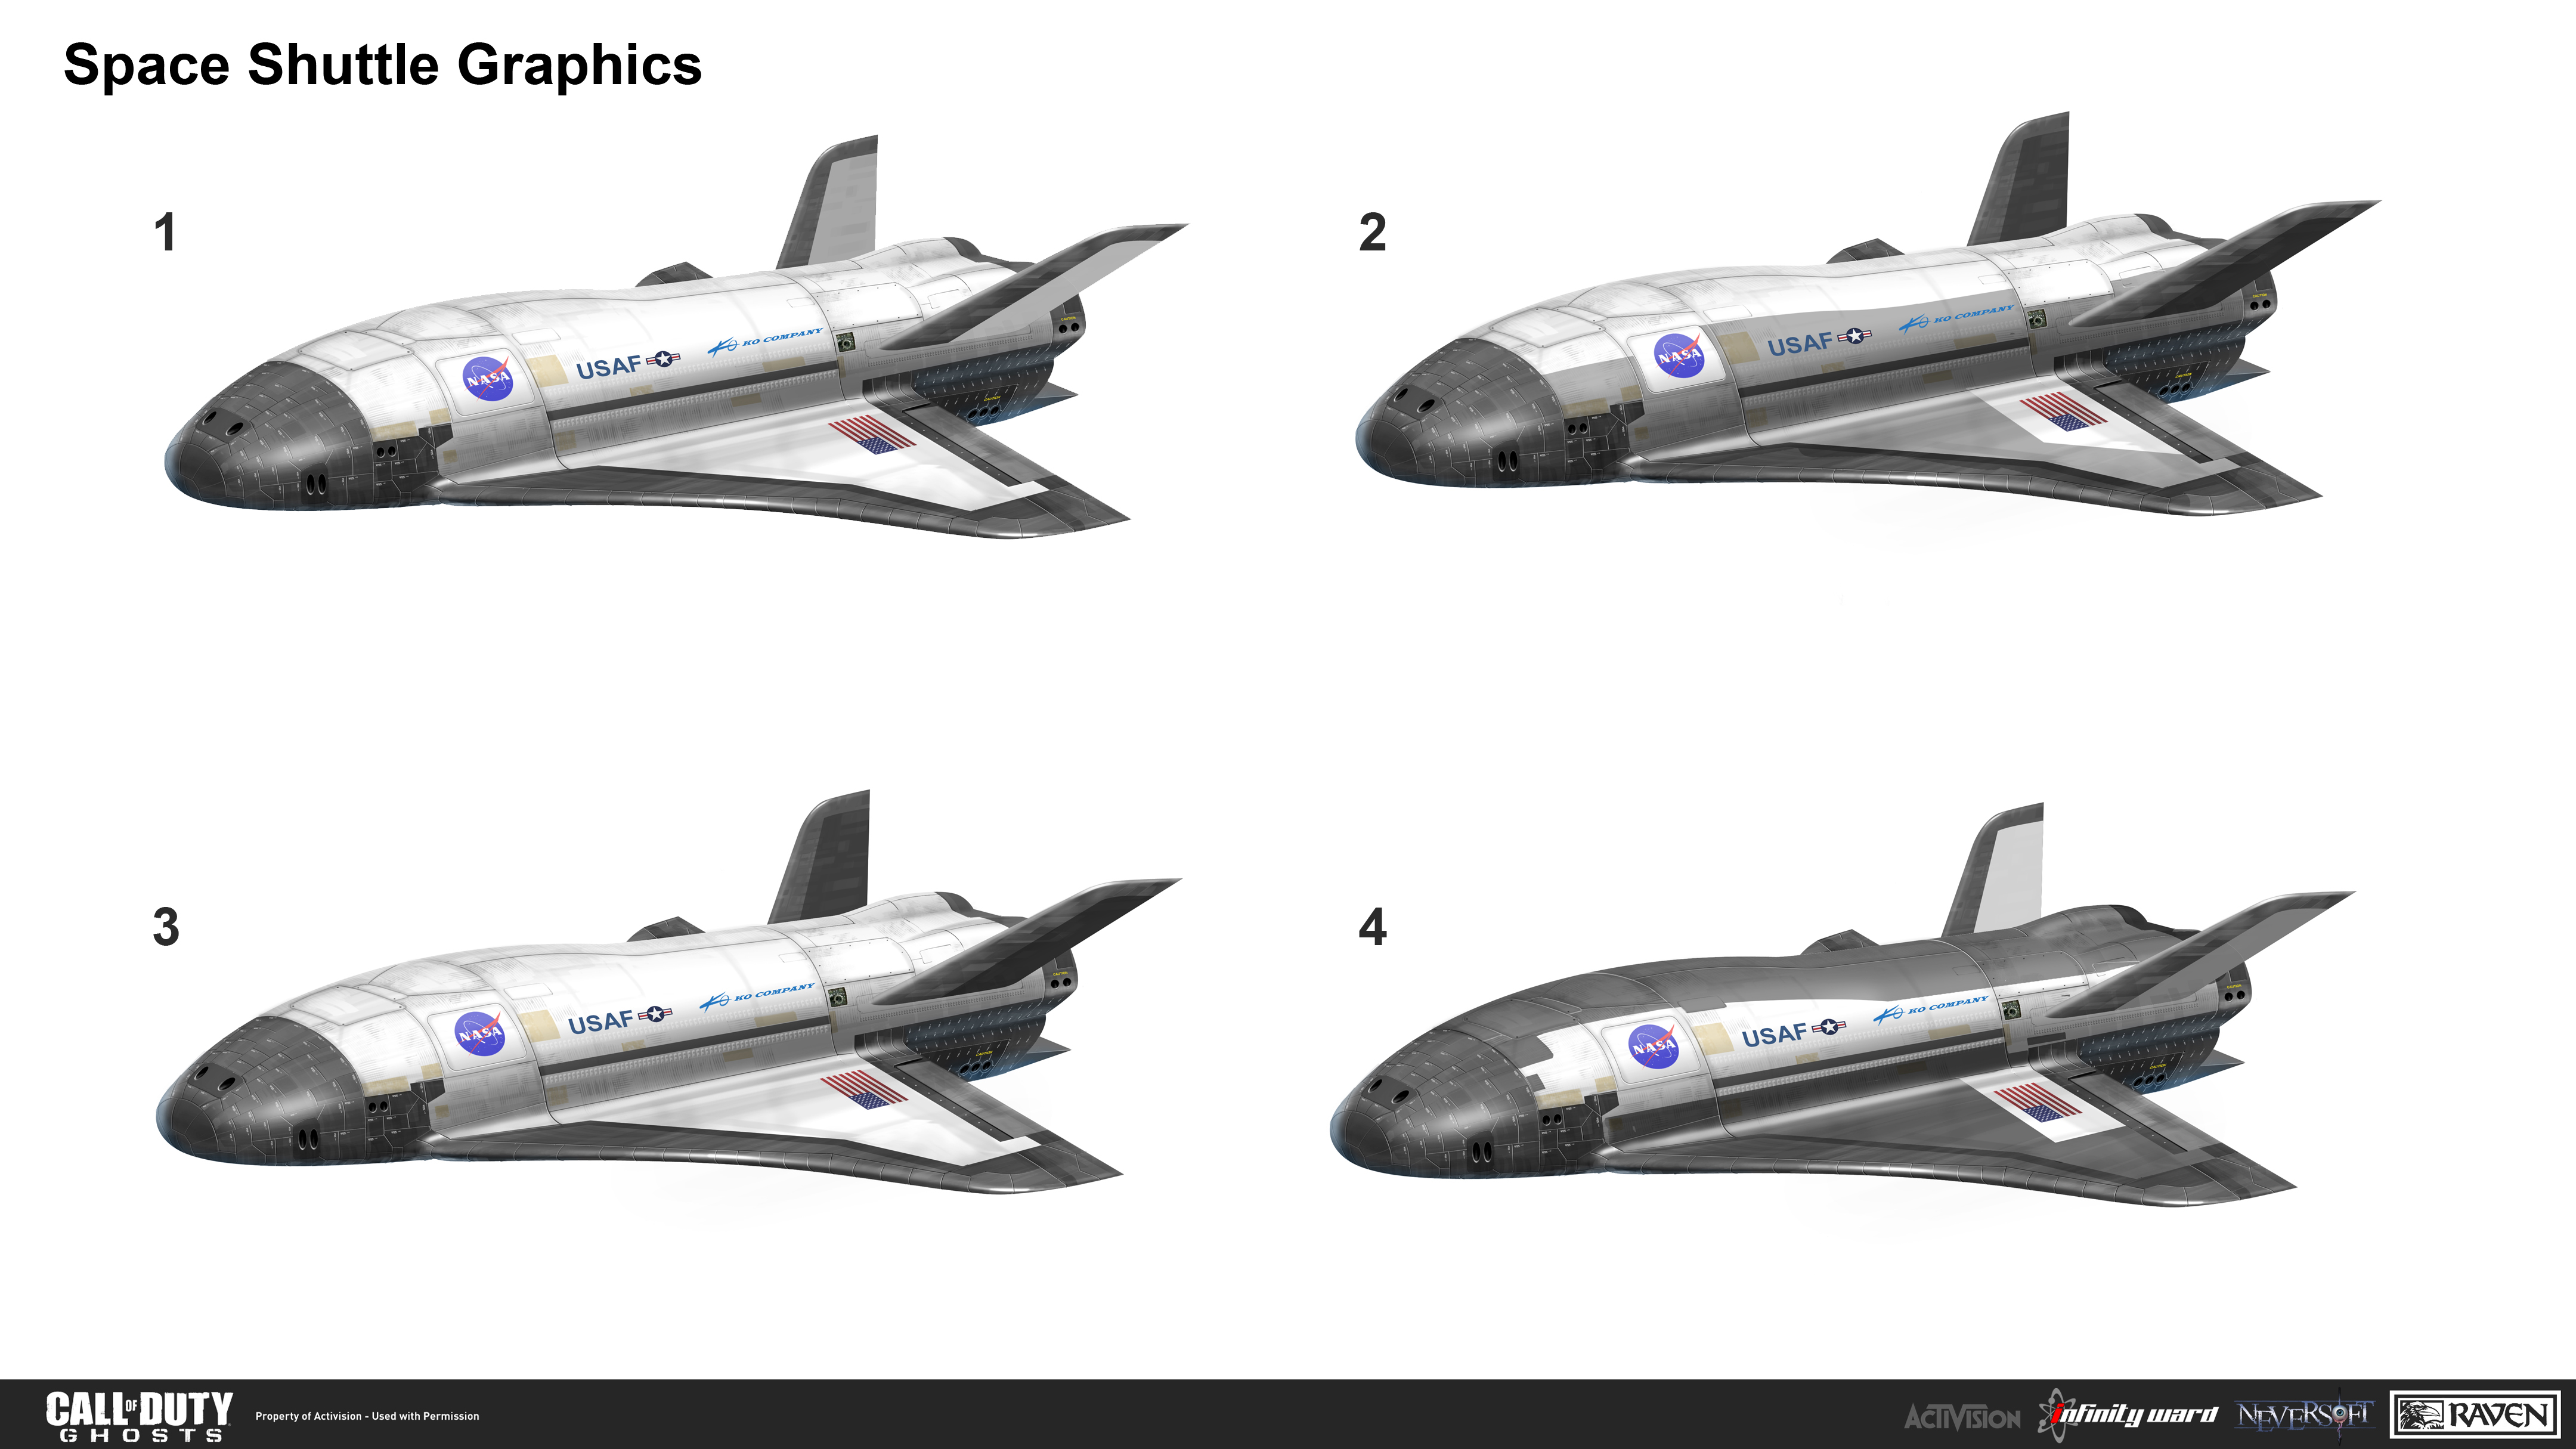 sko_03-22-13_space2_shuttle_graphics